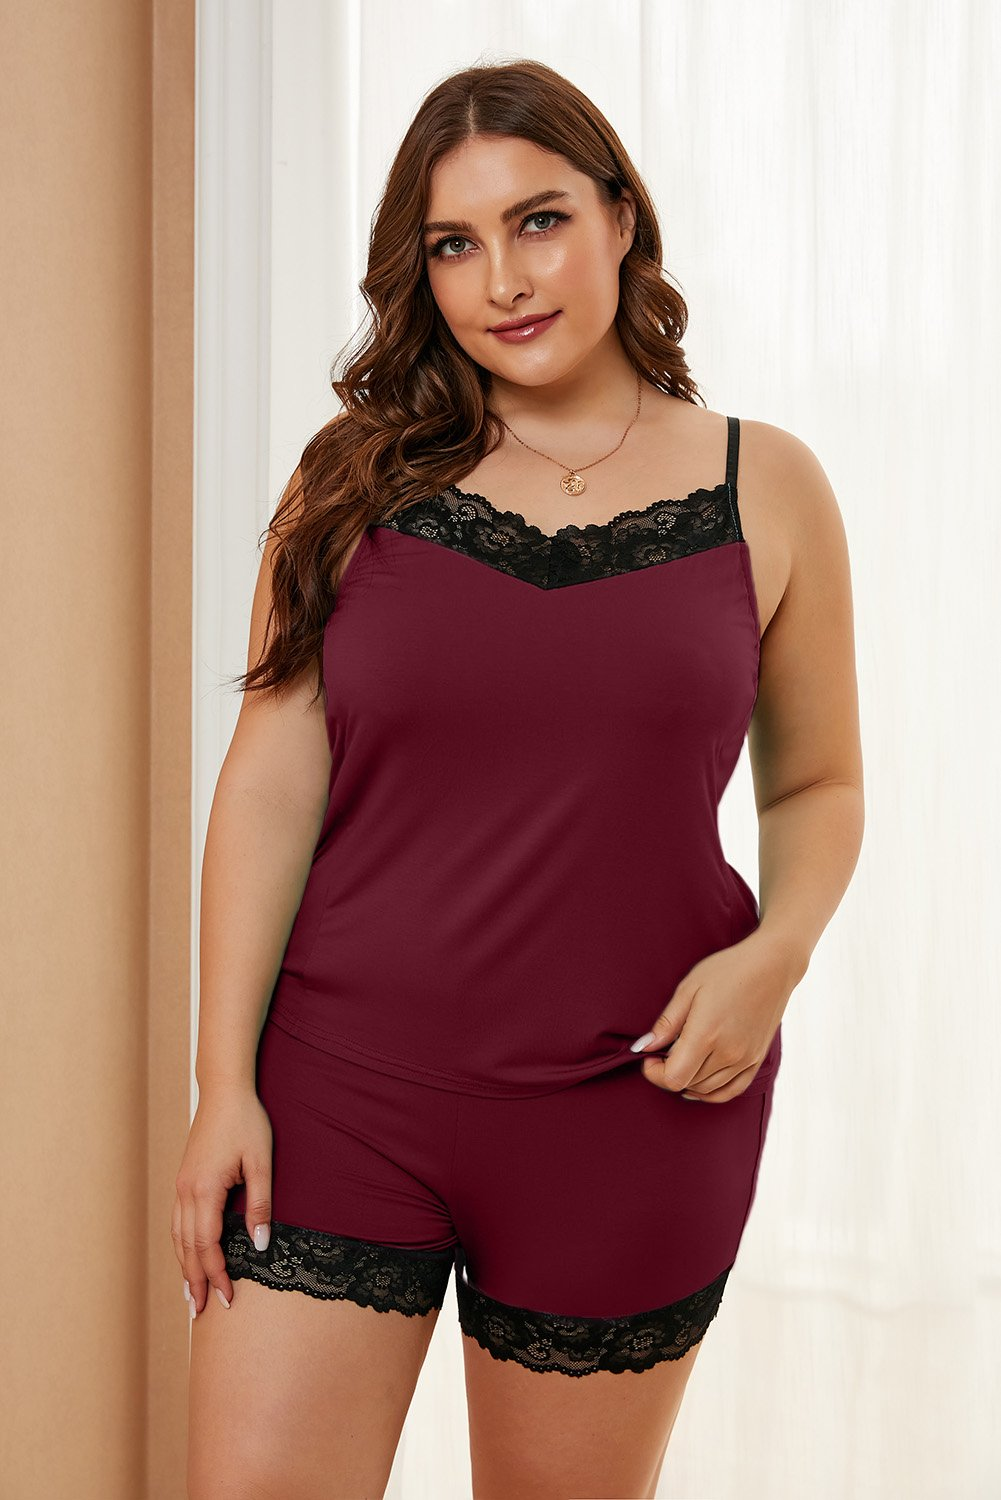 Plus Size Wine Red Loungewear Set With Lace Trim